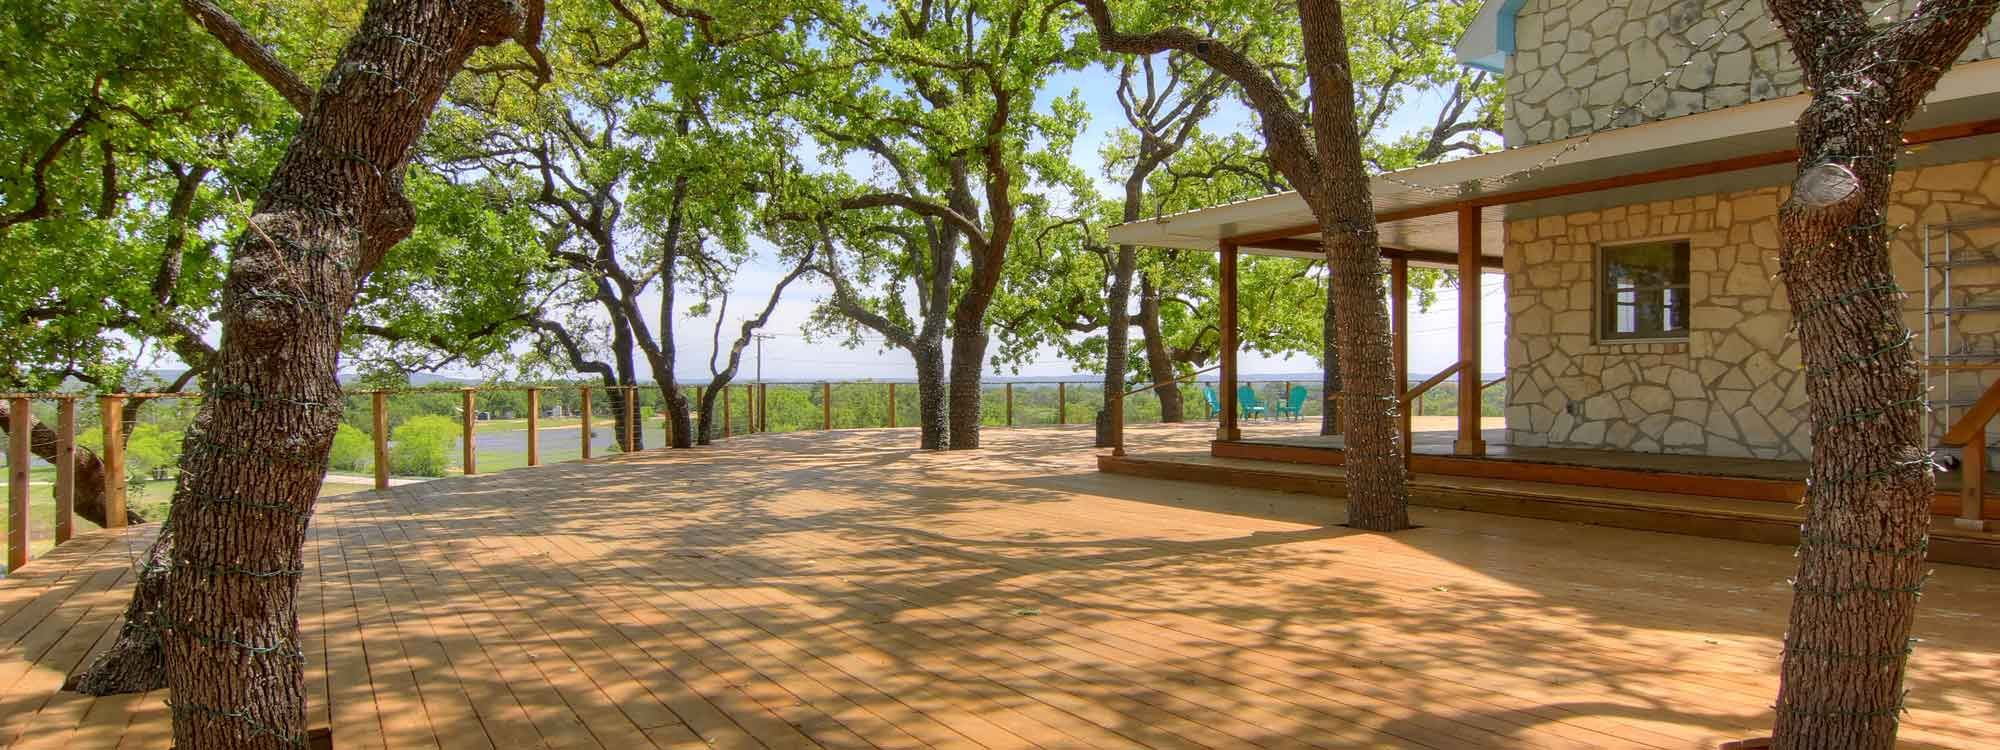 Texas Hill Country Ranch Rental Venue